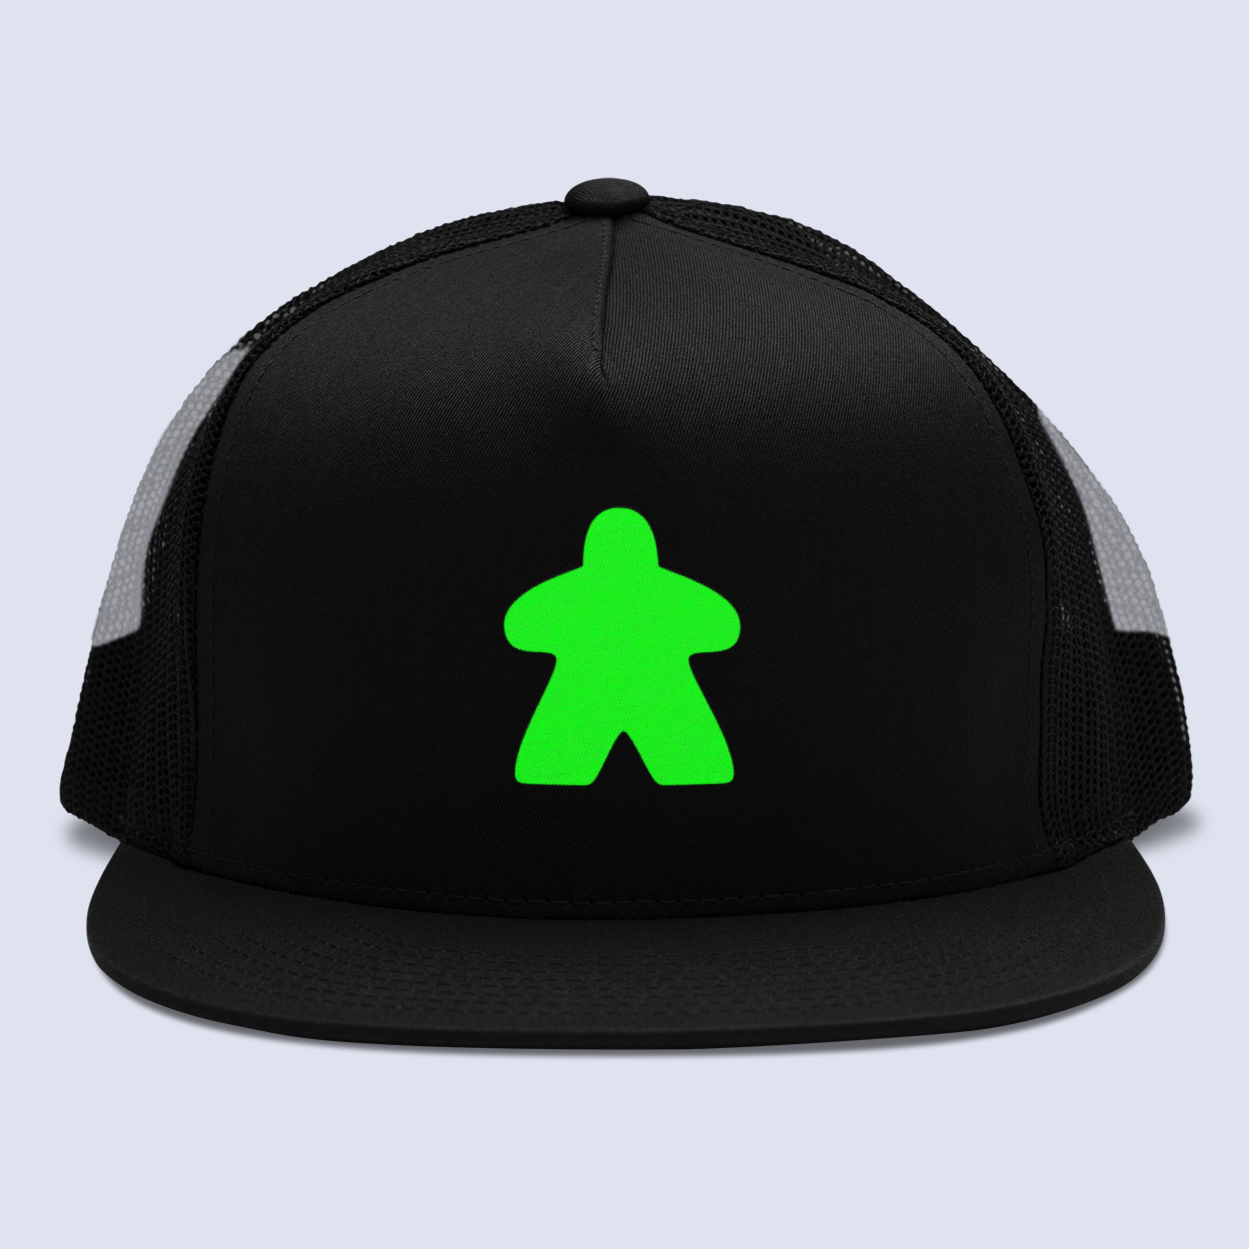 Green Meeple Board Game Flat Bill Trucker Hat